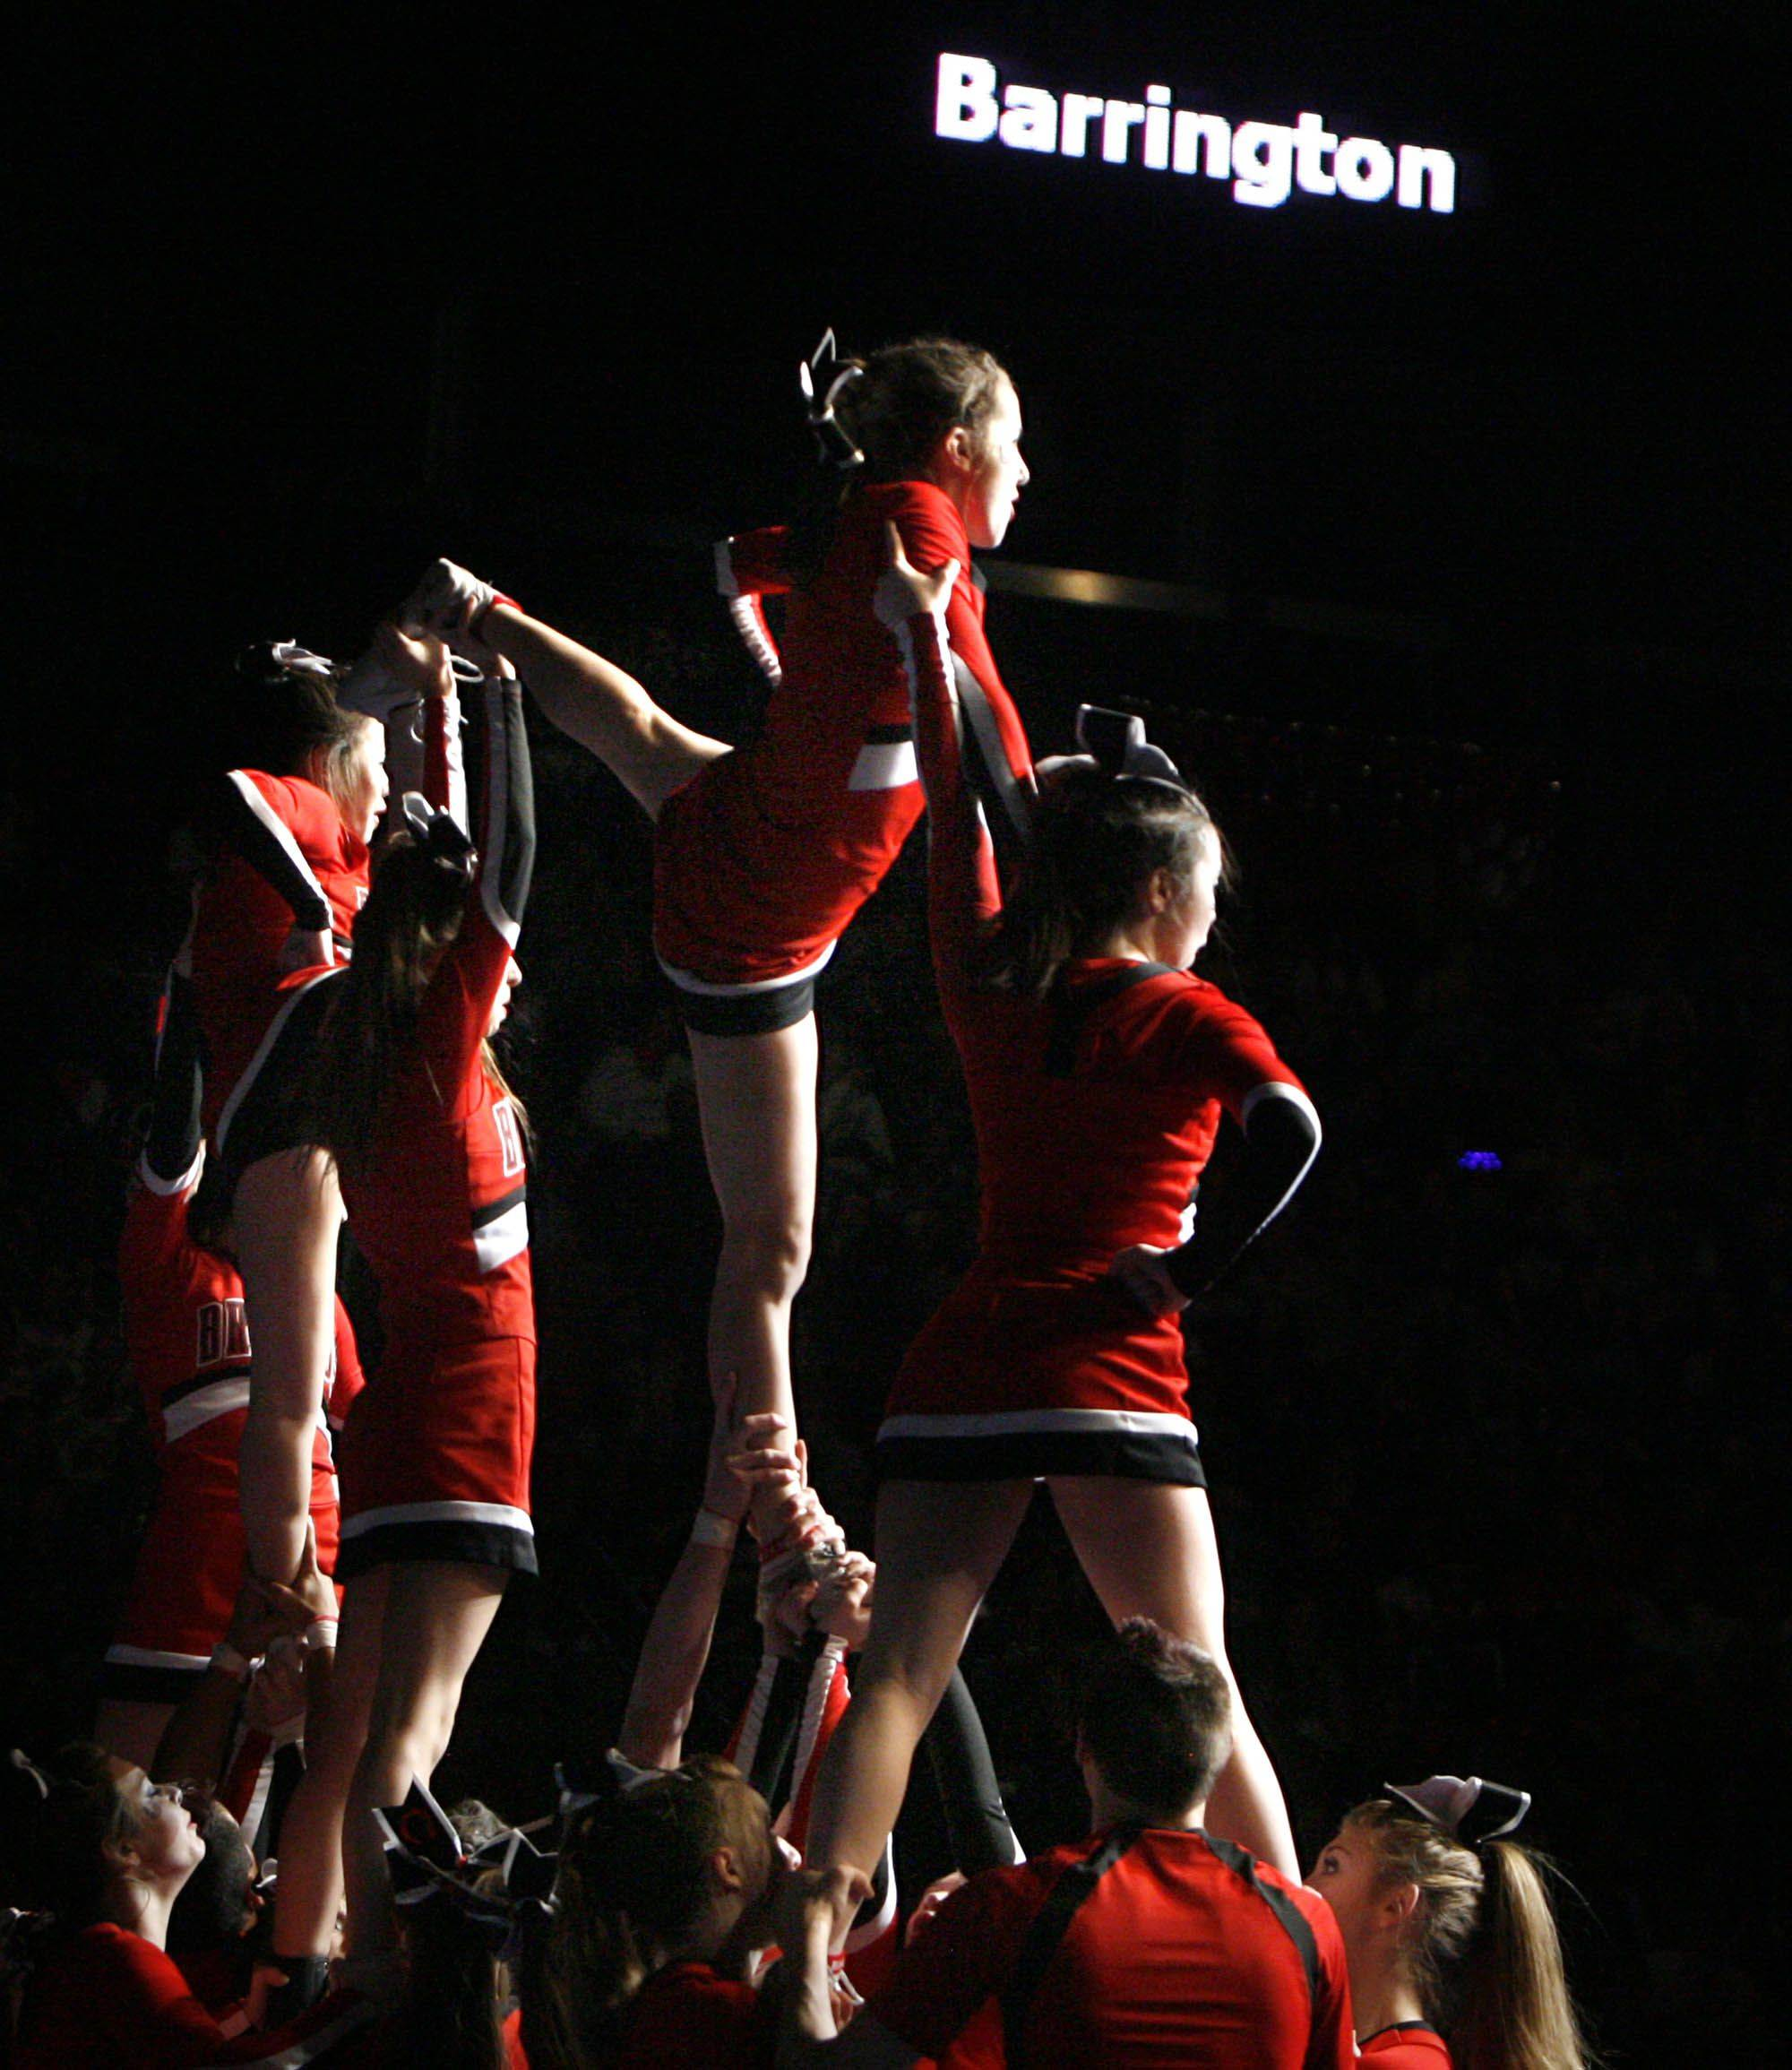 Barrington performs at IHSA cheerleading state finals at U.S. Cellular Coliseum in Bloomington on Saturday, February 4th.